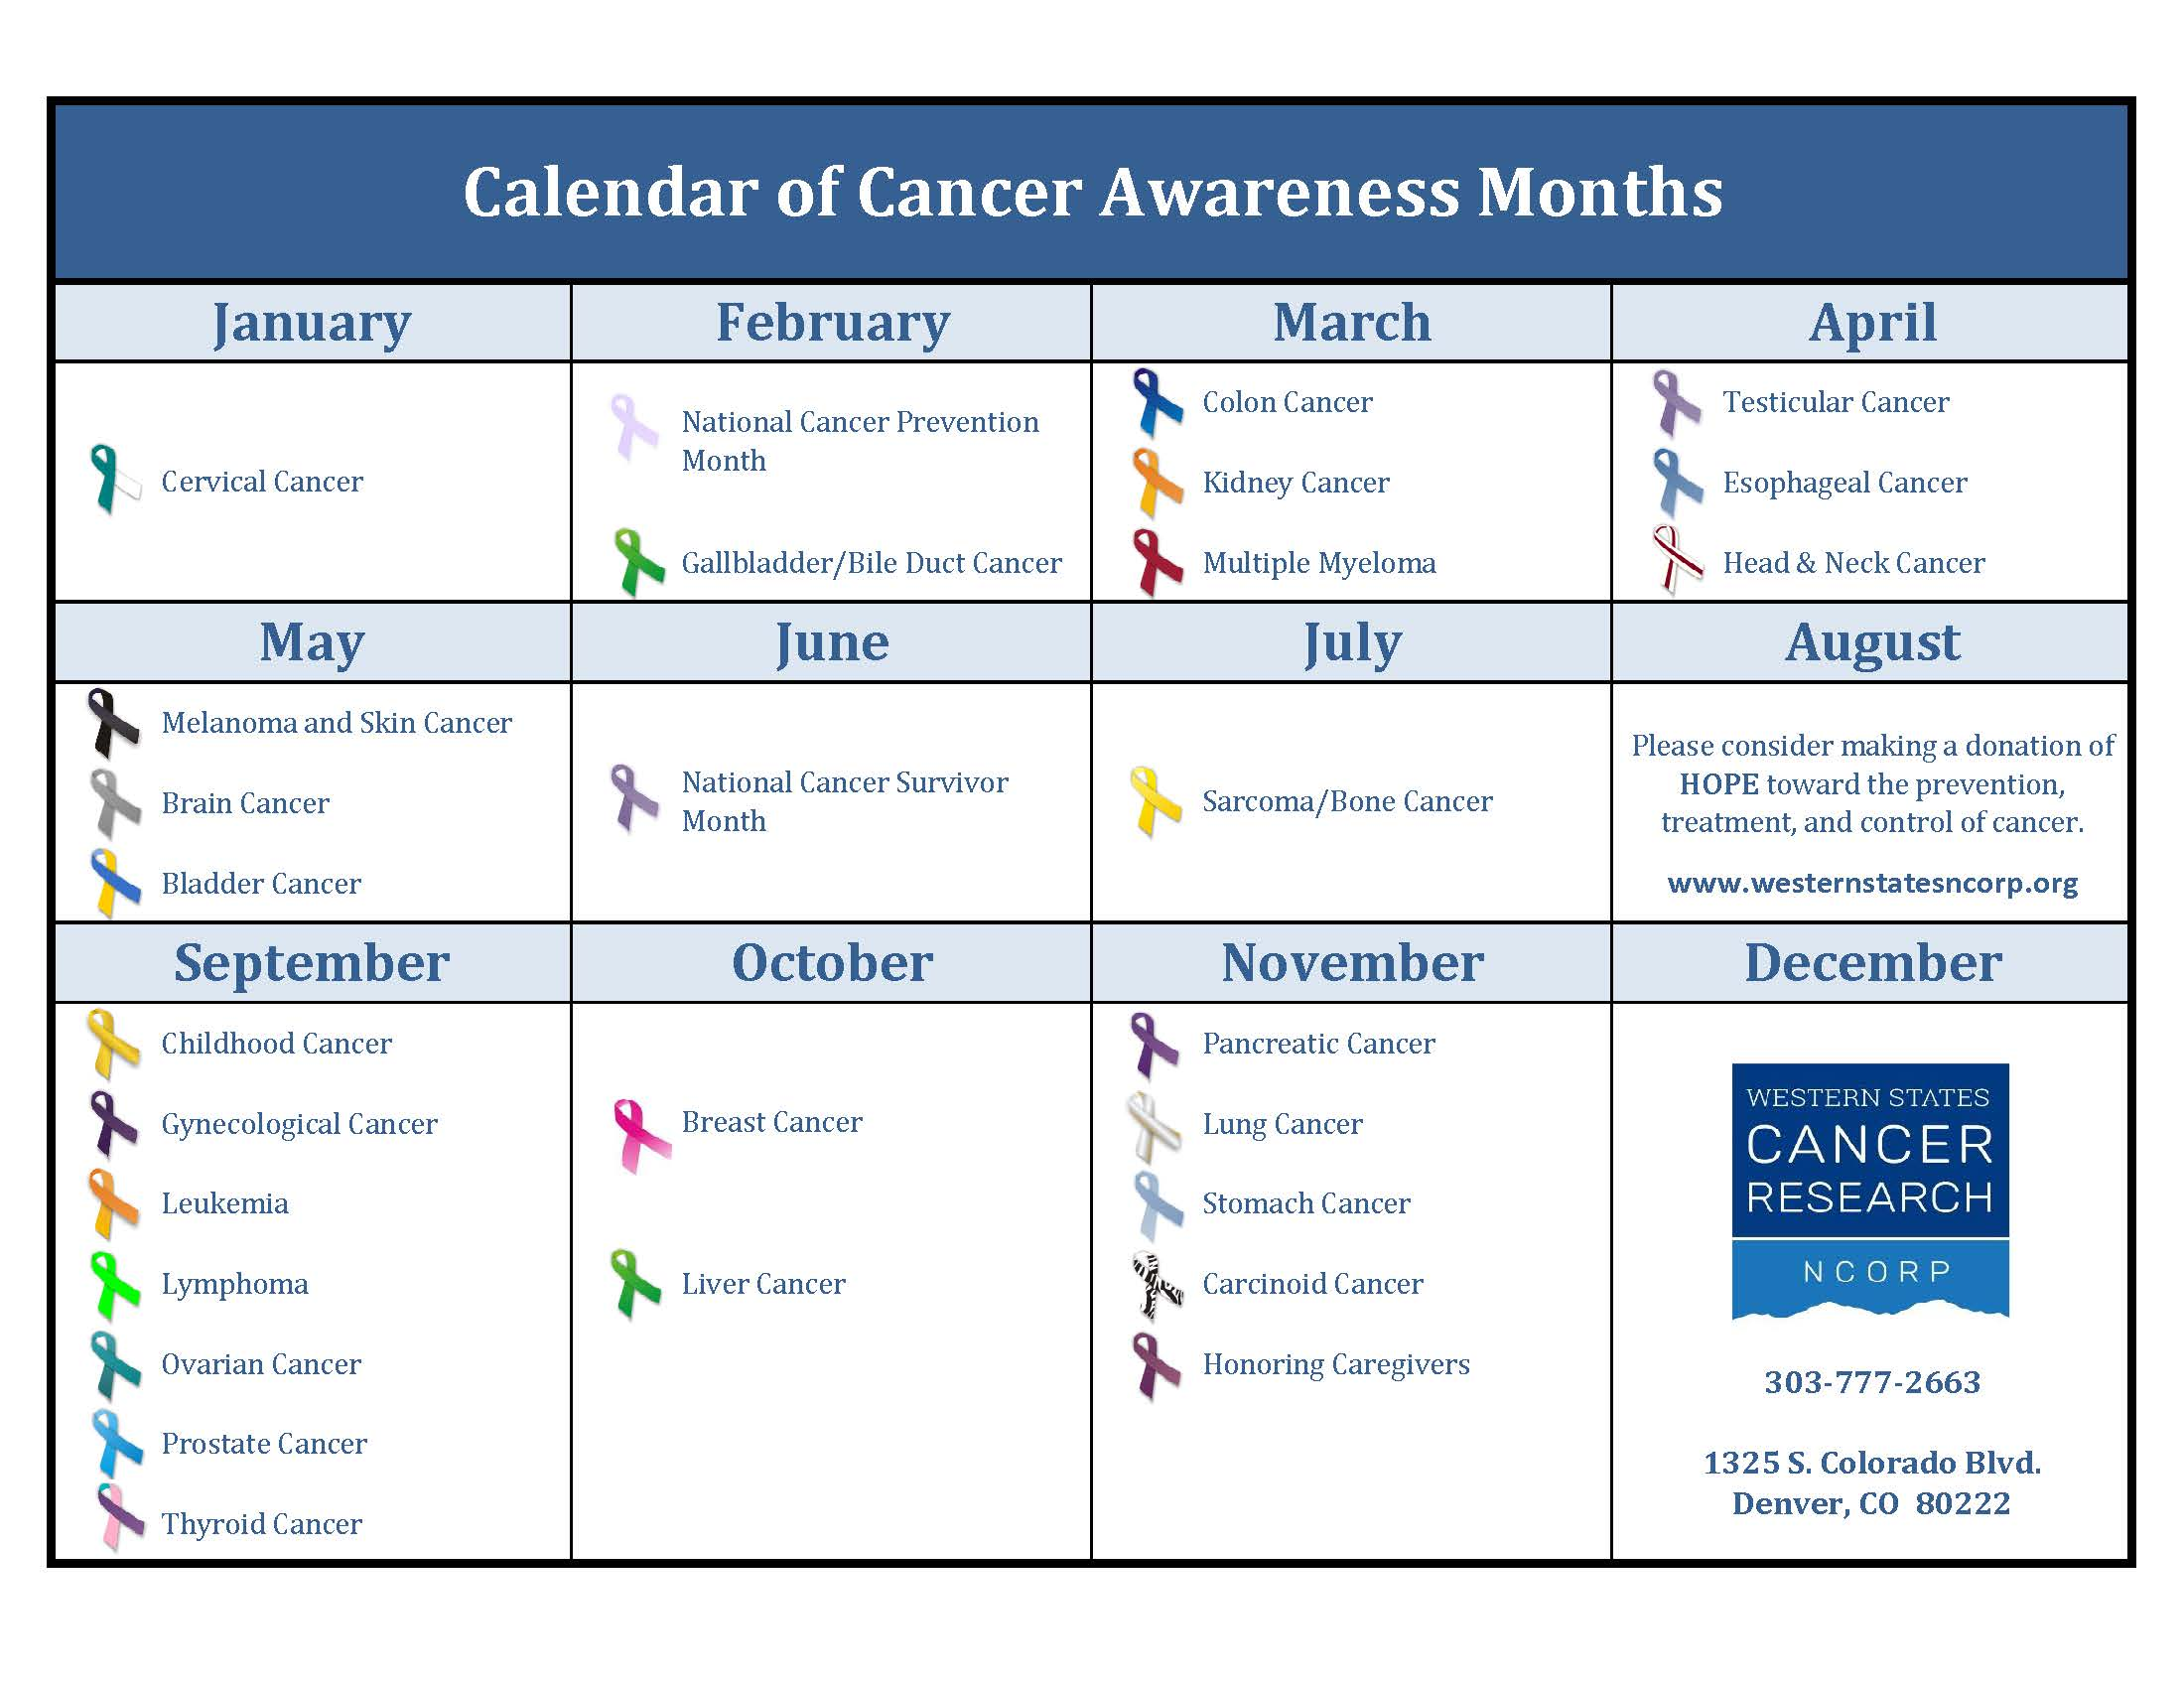 WSCR_Cancer Awareness Calendar.jpg